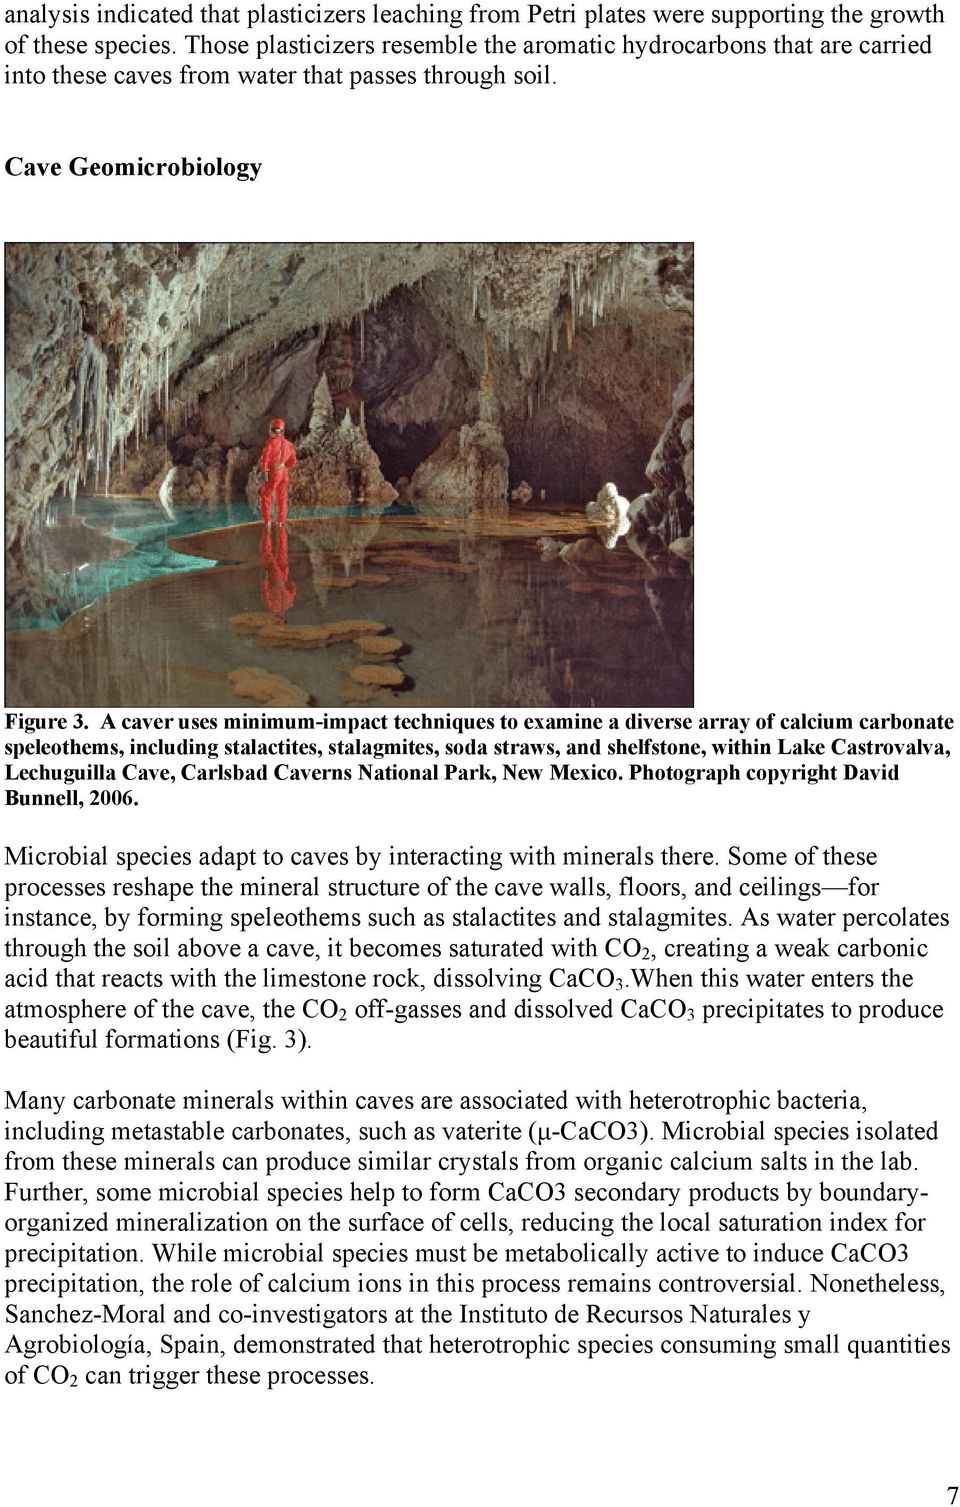 A caver uses minimum-impact techniques to examine a diverse array of calcium carbonate speleothems, including stalactites, stalagmites, soda straws, and shelfstone, within Lake Castrovalva,